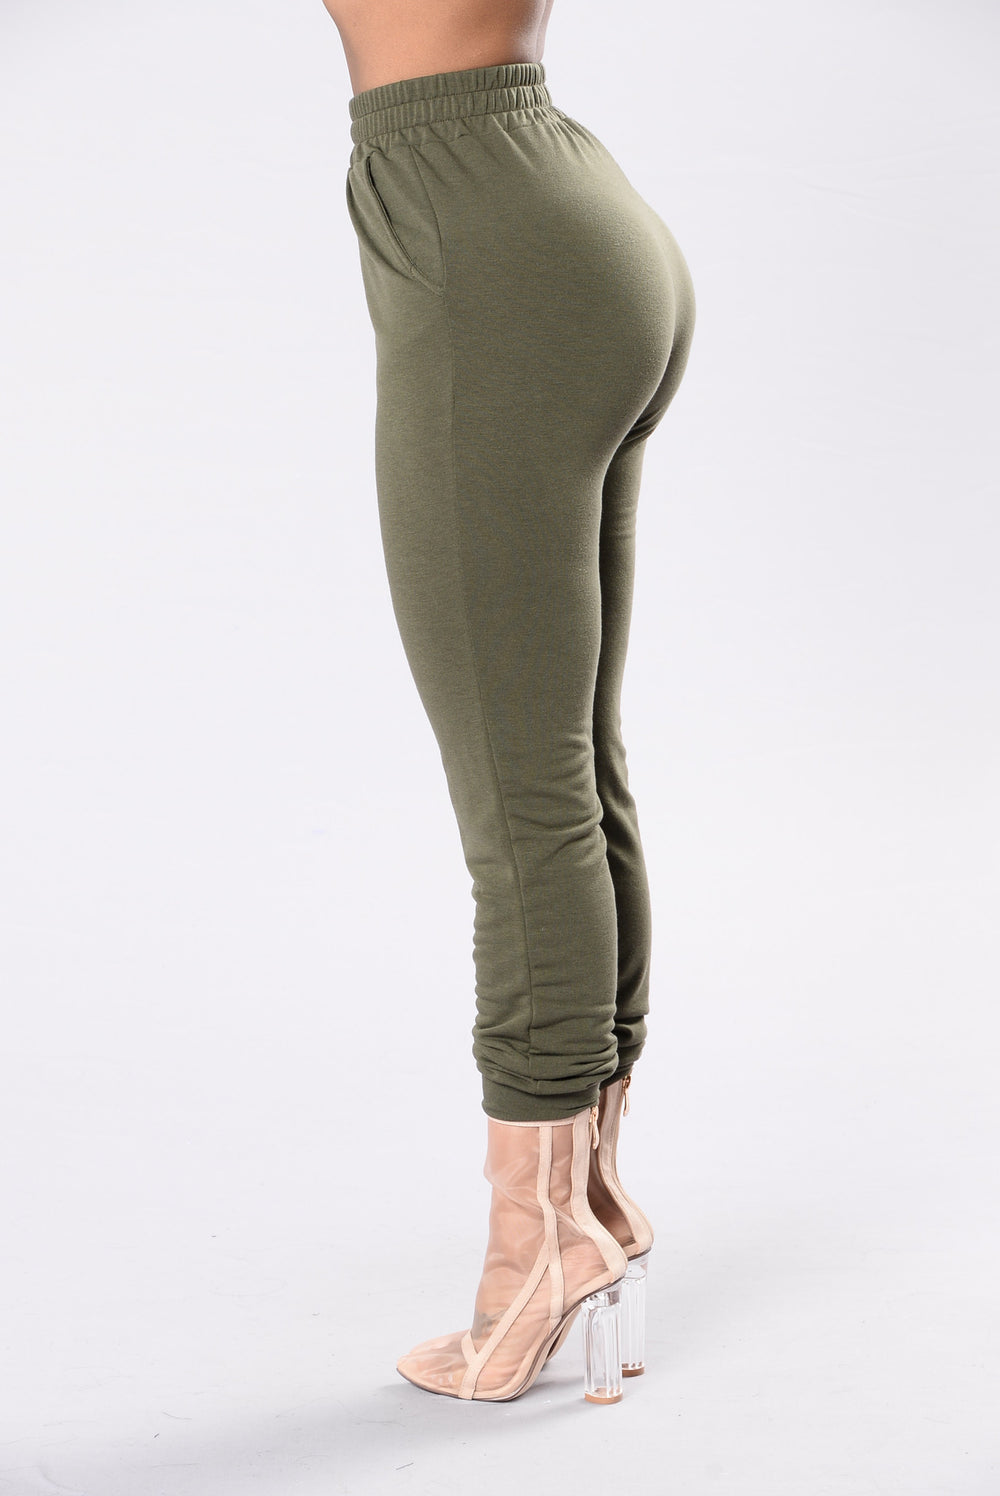 Comfy and Cozy Pants - Olive